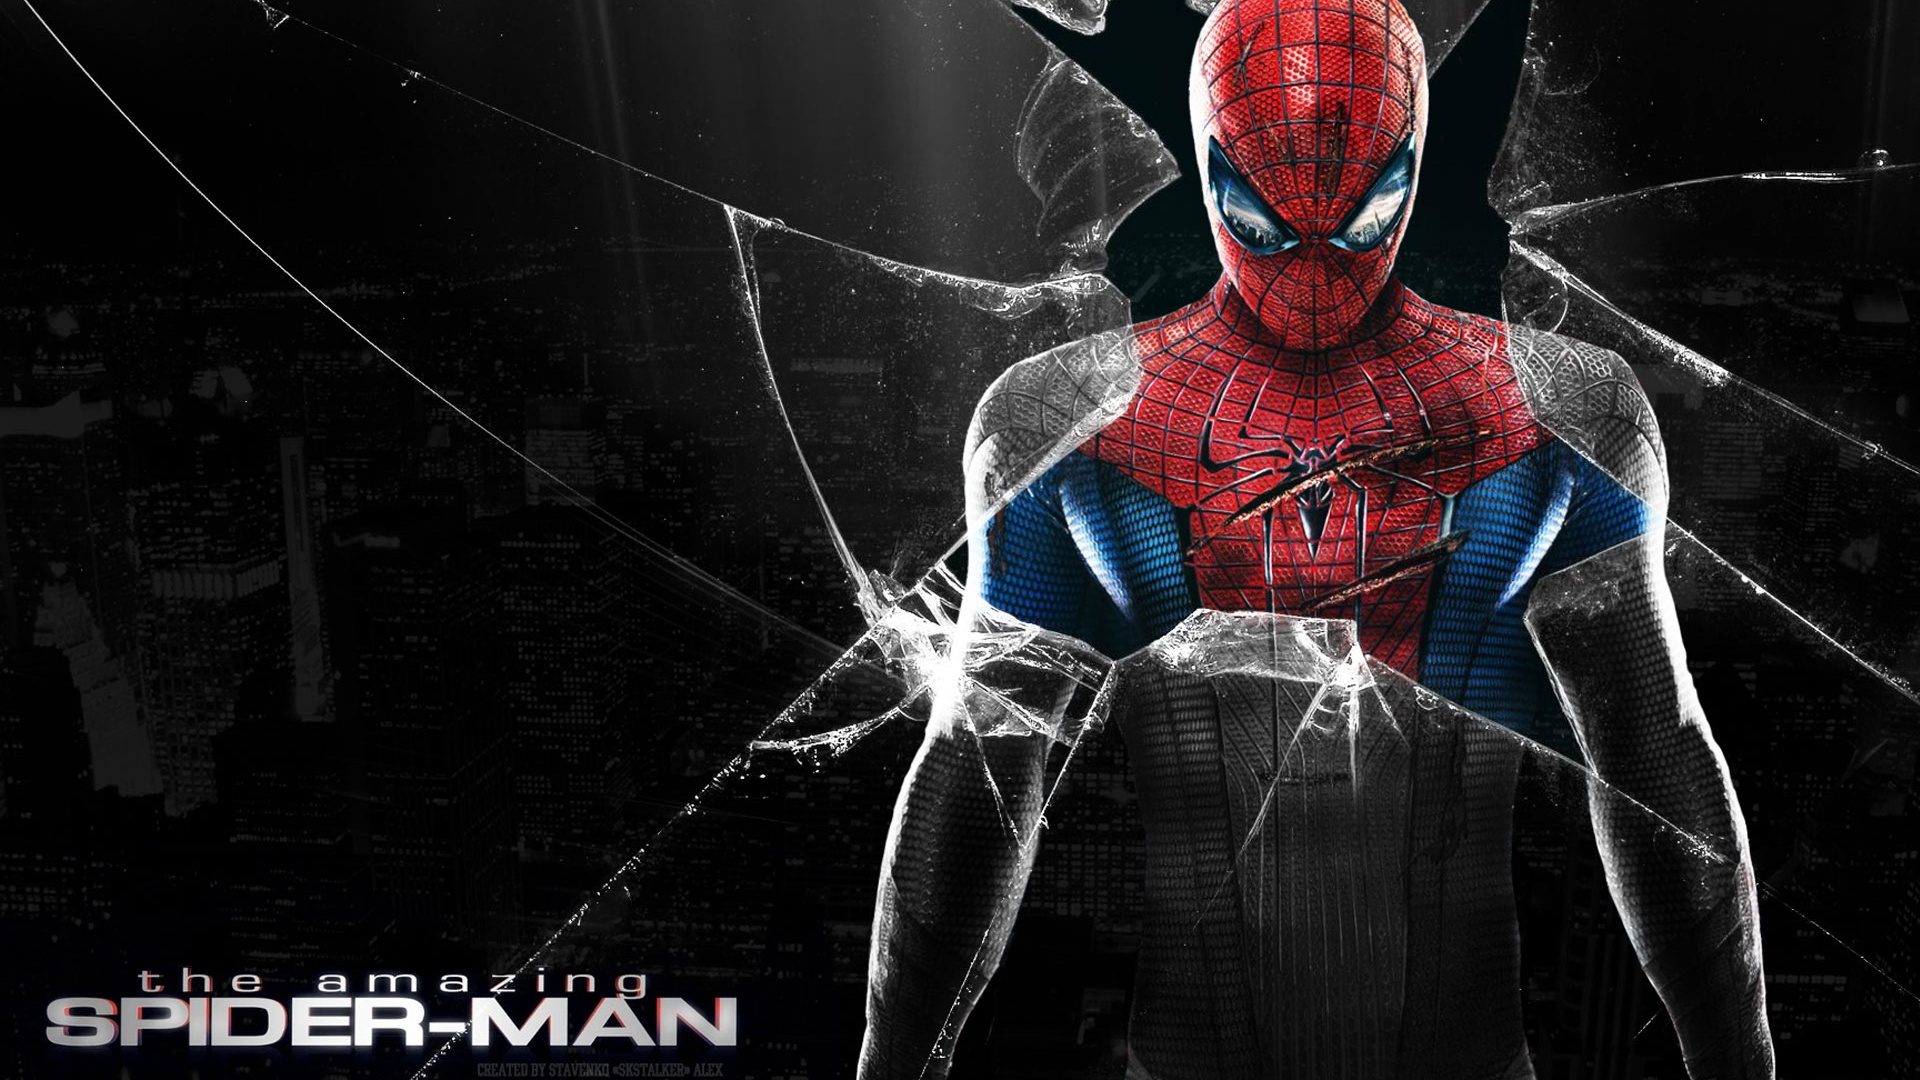 10 Best Spider Man 2099 Wallpaper Hd Full Hd 1920 1080 For: Download Wallpaper 1920x1080 2012 The Amazing Spider-Man